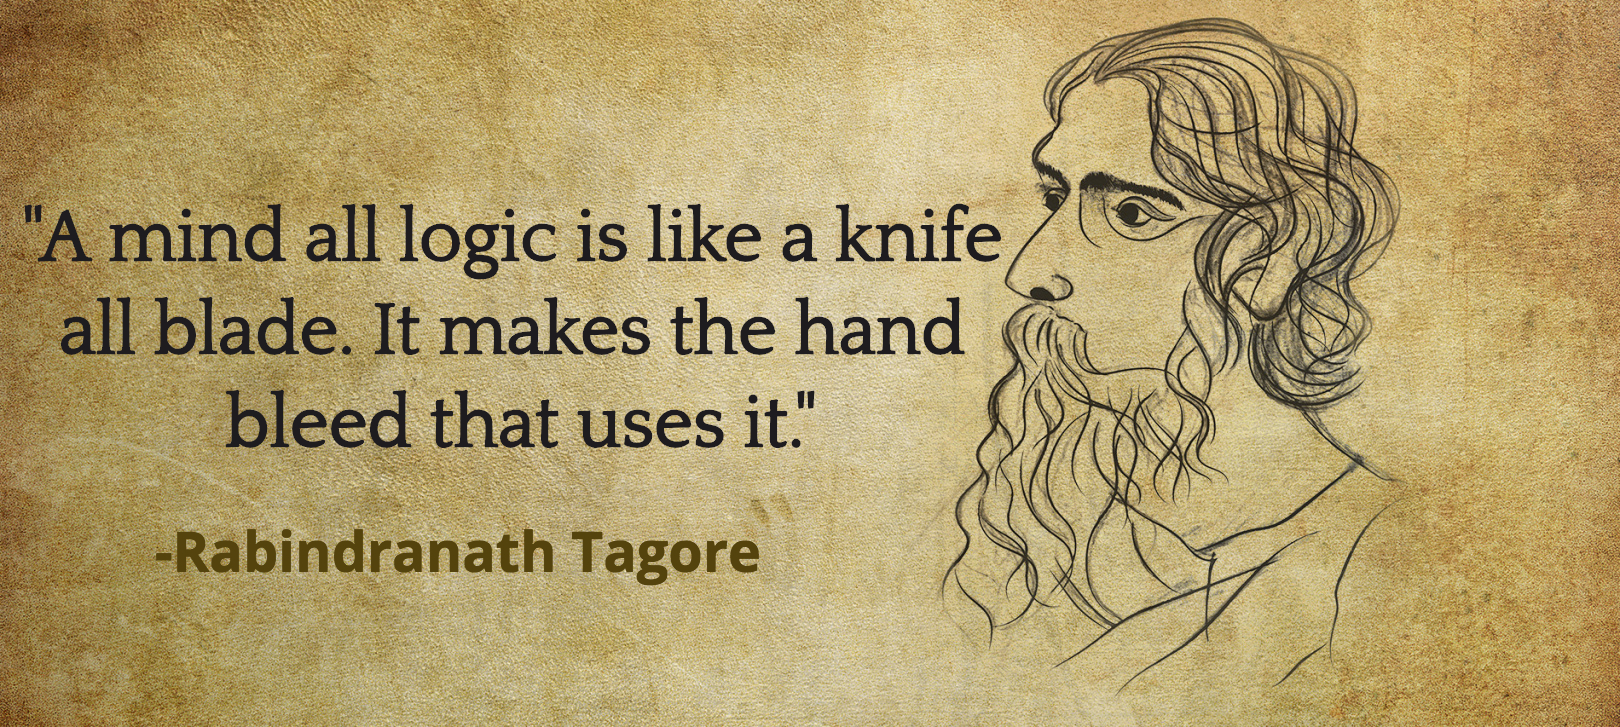 a mind all logic is like a knife all blade. it makes the hand bleeded that uses it. Zach_krein a mind all logic is like a knife all blade it makes the hand bleed that uses it -rabindranath tagore #kershaw.